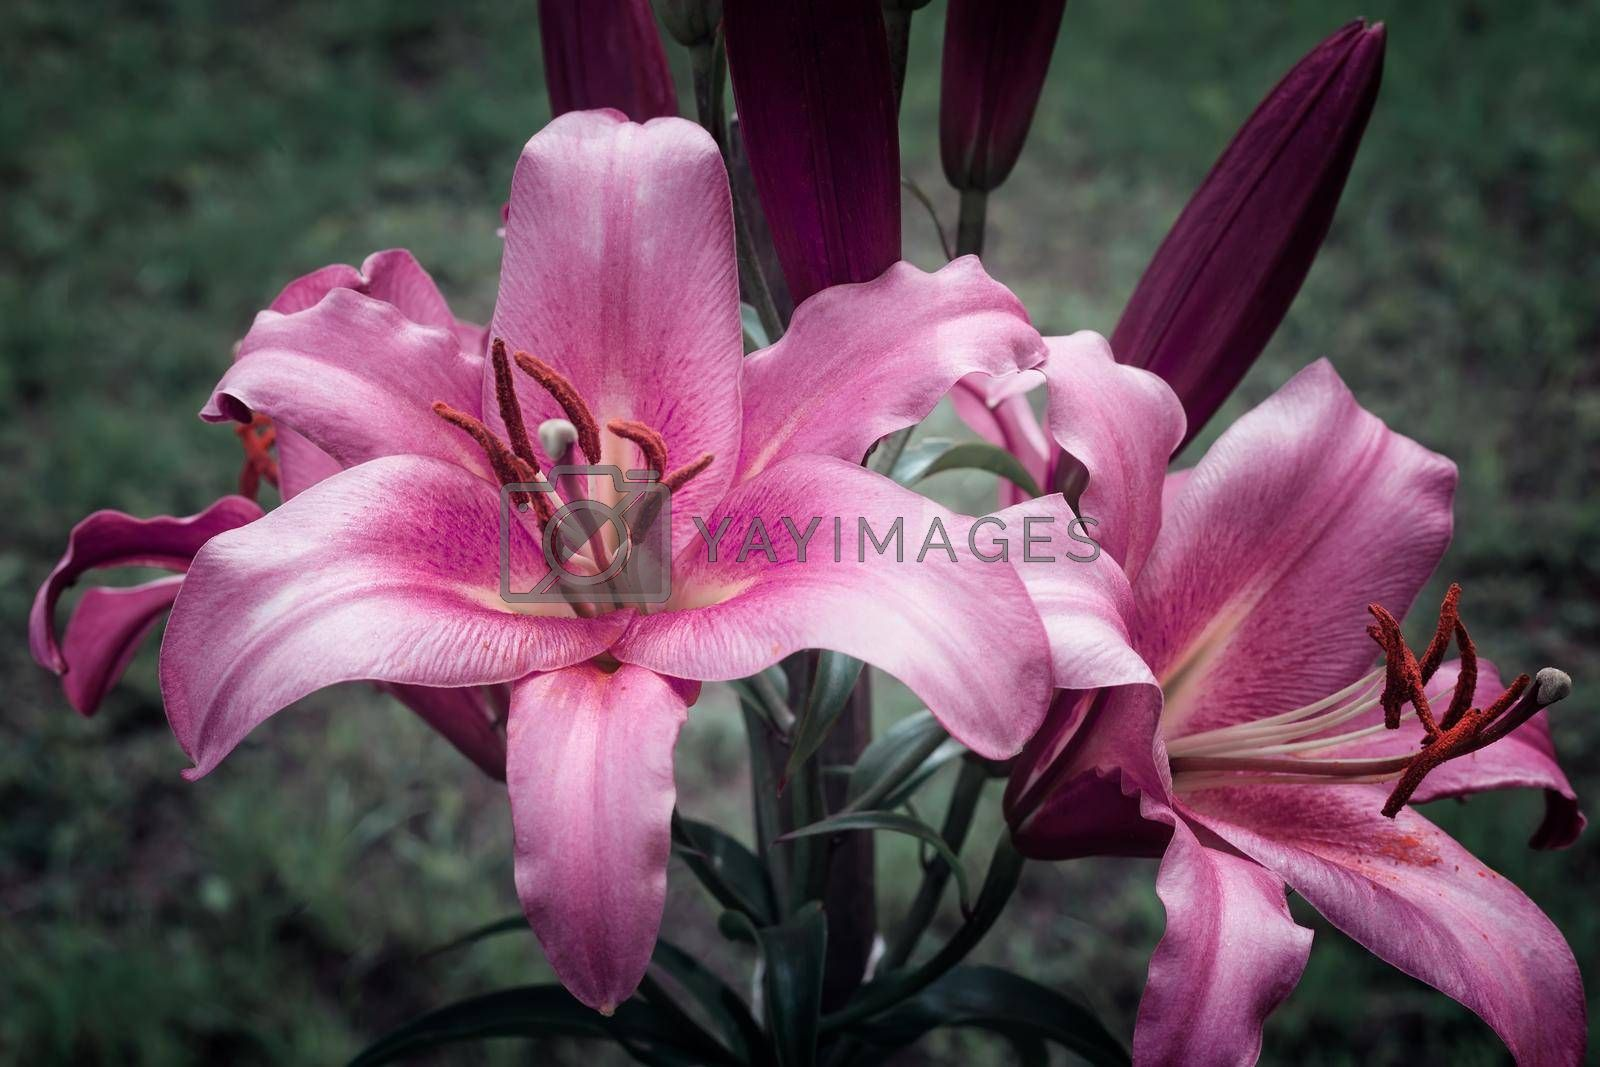 Two beautiful purple Lily flower on green leaf background. Presented close-up.